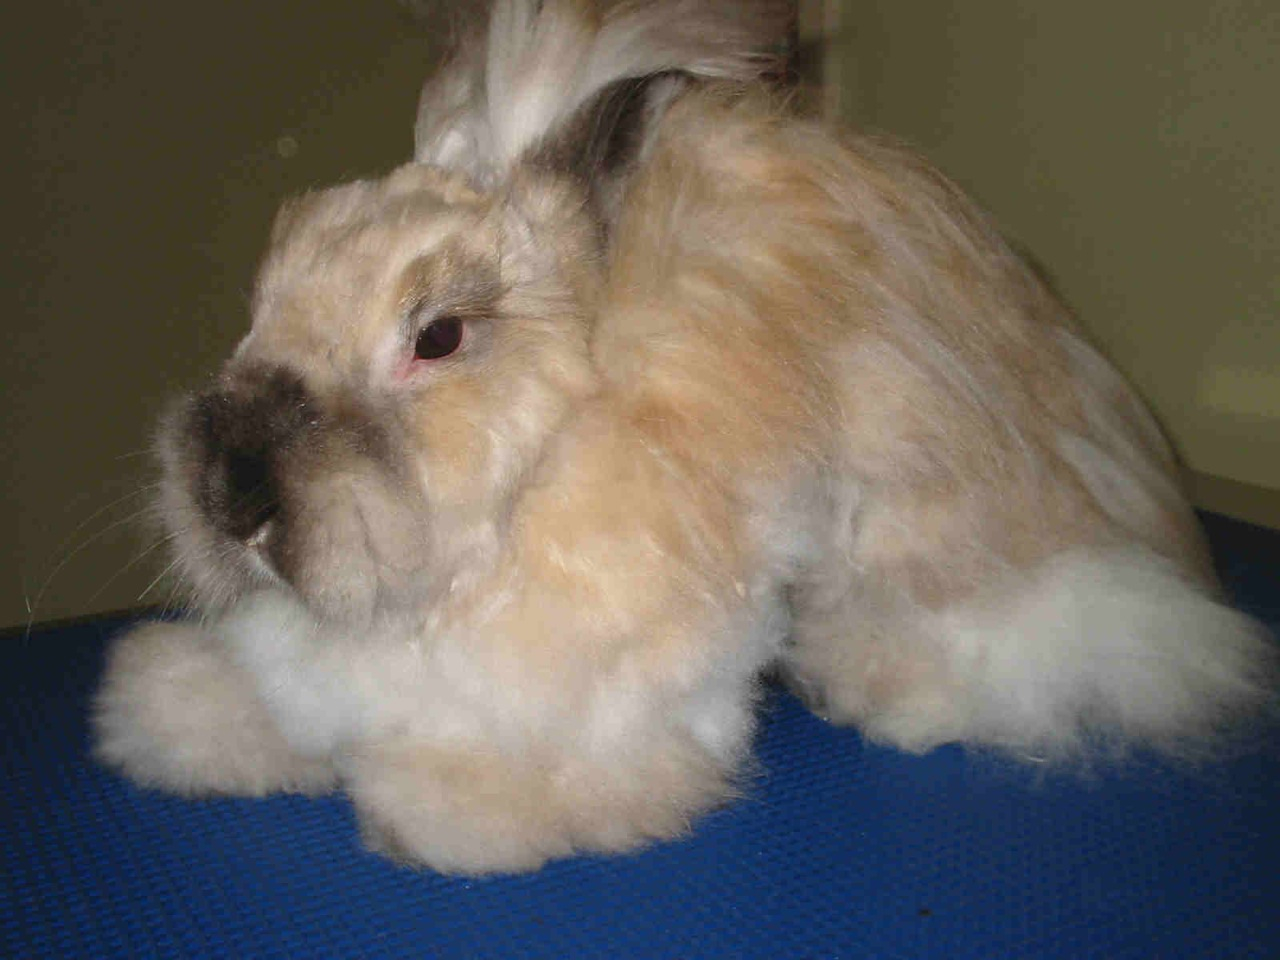 Long haired rabbits like this Cashmere require daily grooming